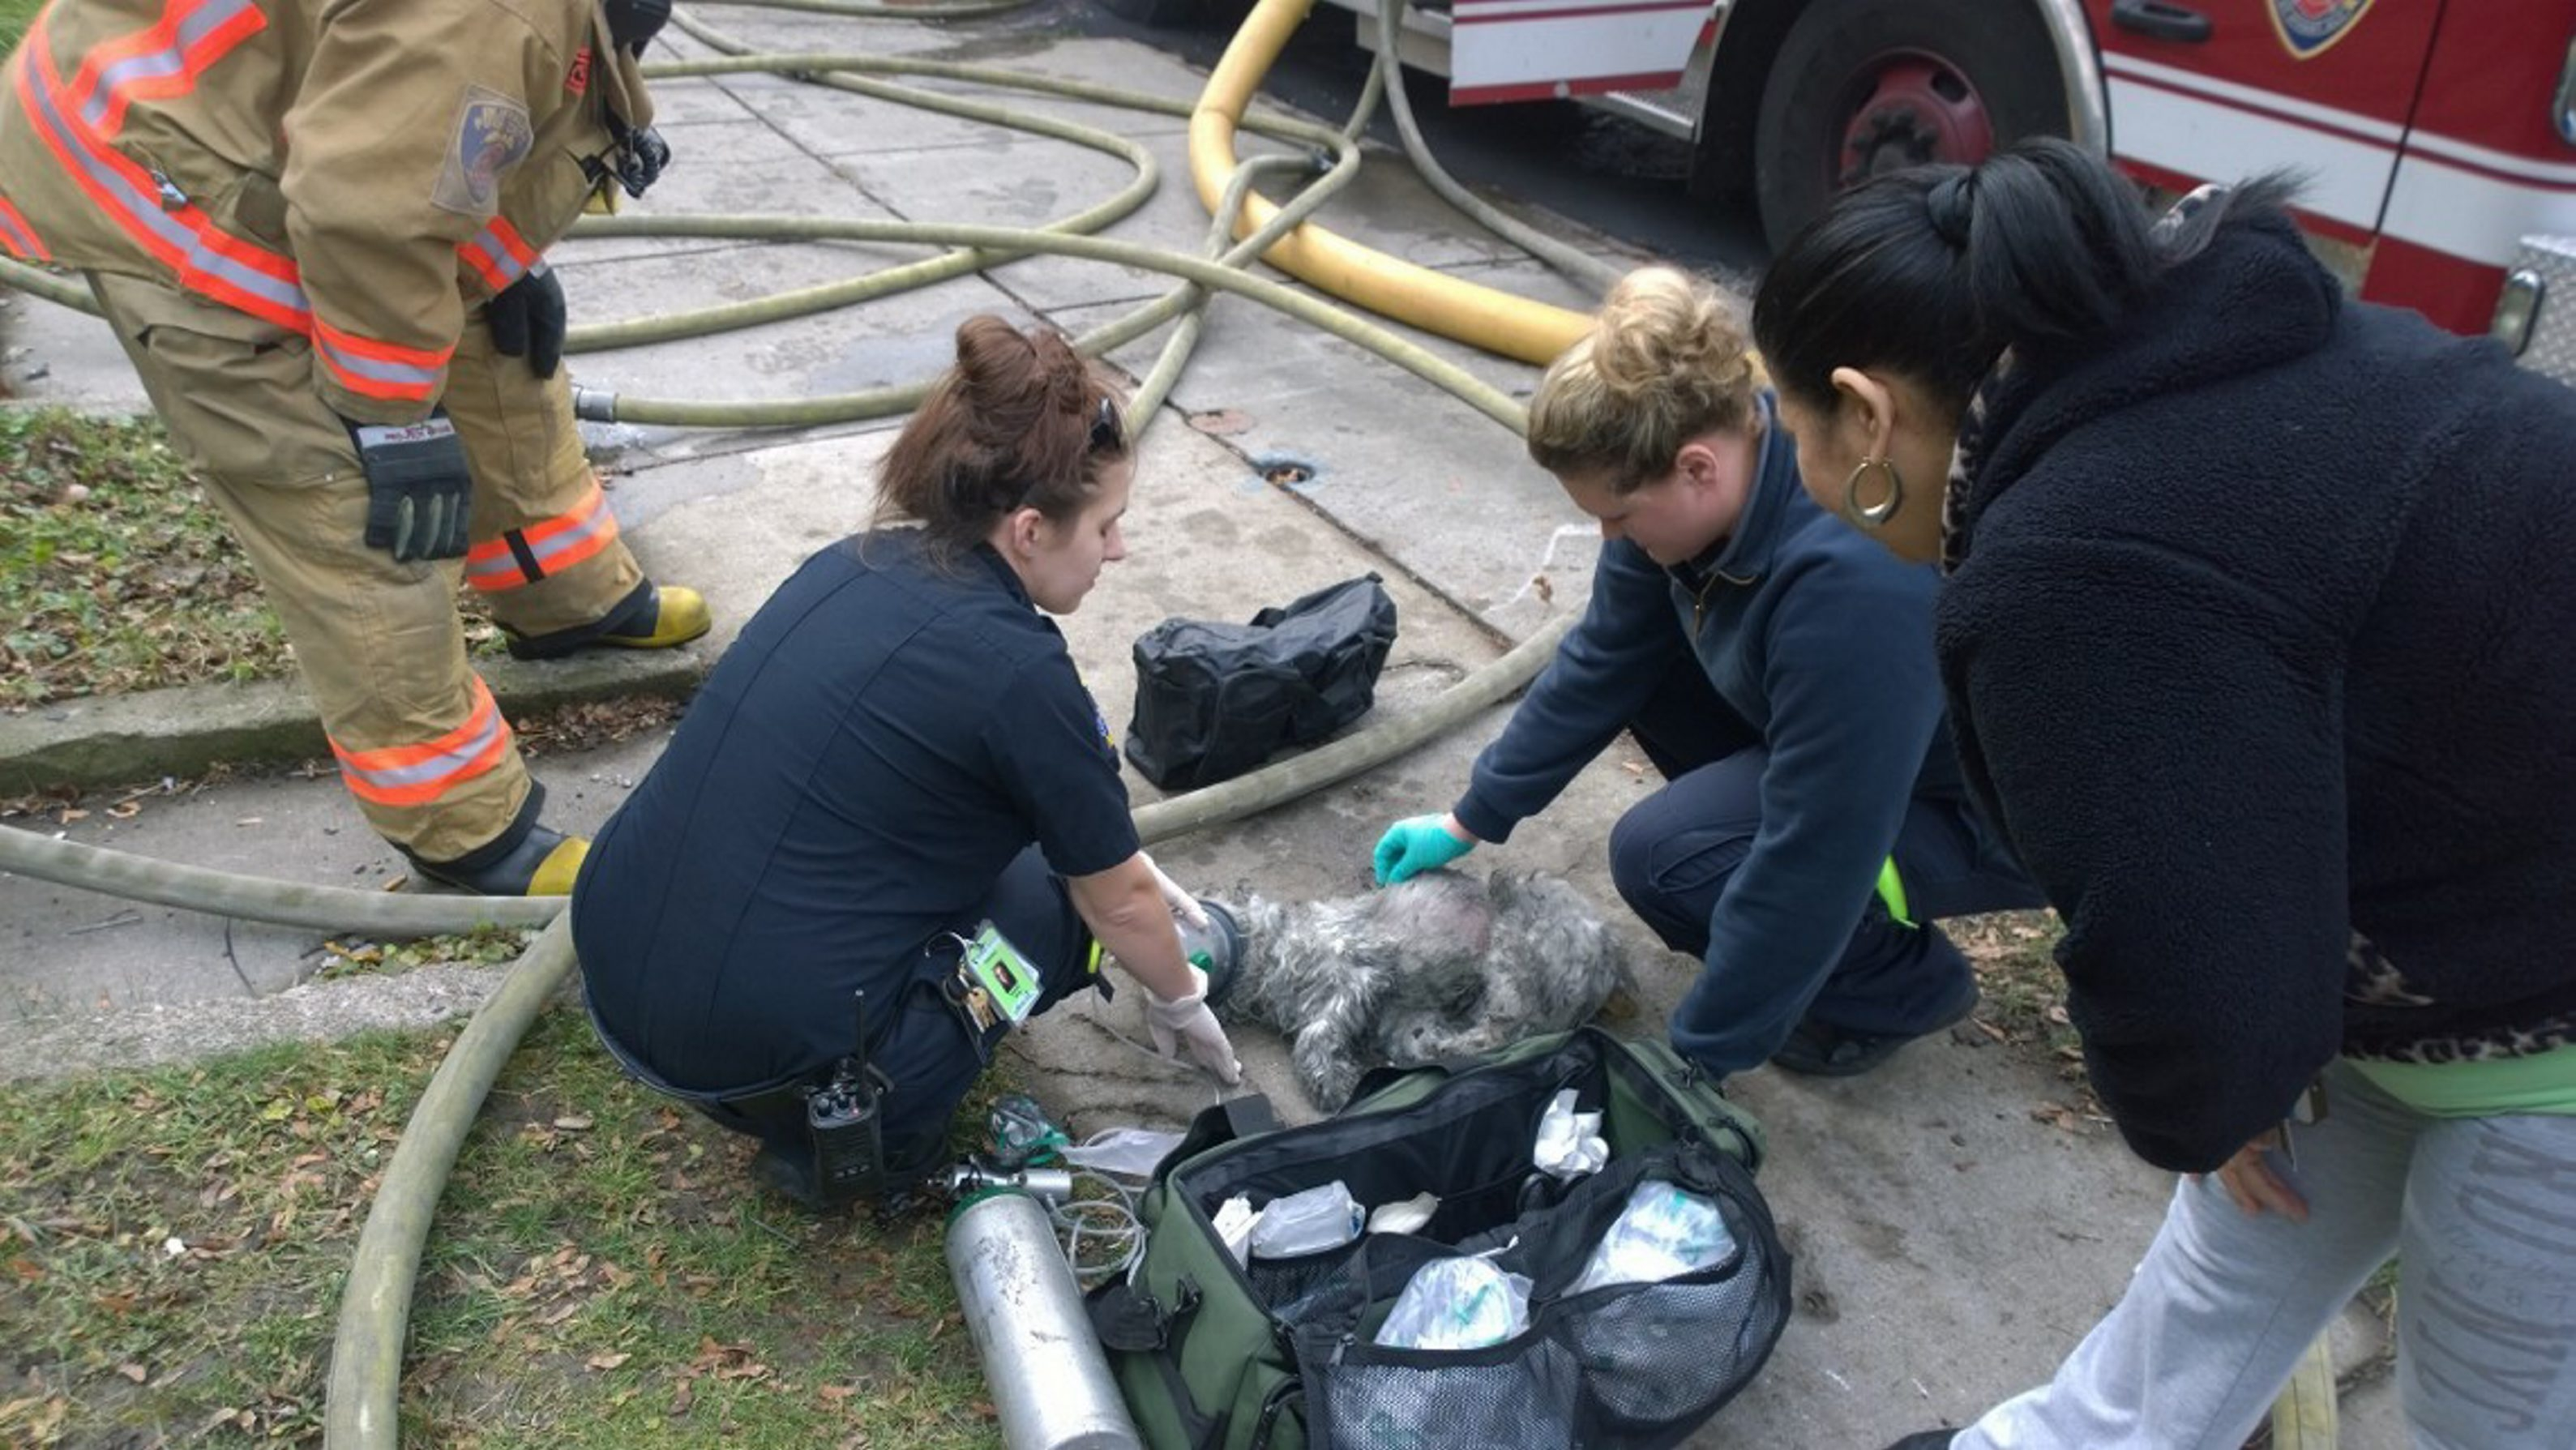 A dog rescued from a house fire on Herkimer Street is given oxygen at the scene on Dec. 10. (David F. Kazmierczak/Special to The News)